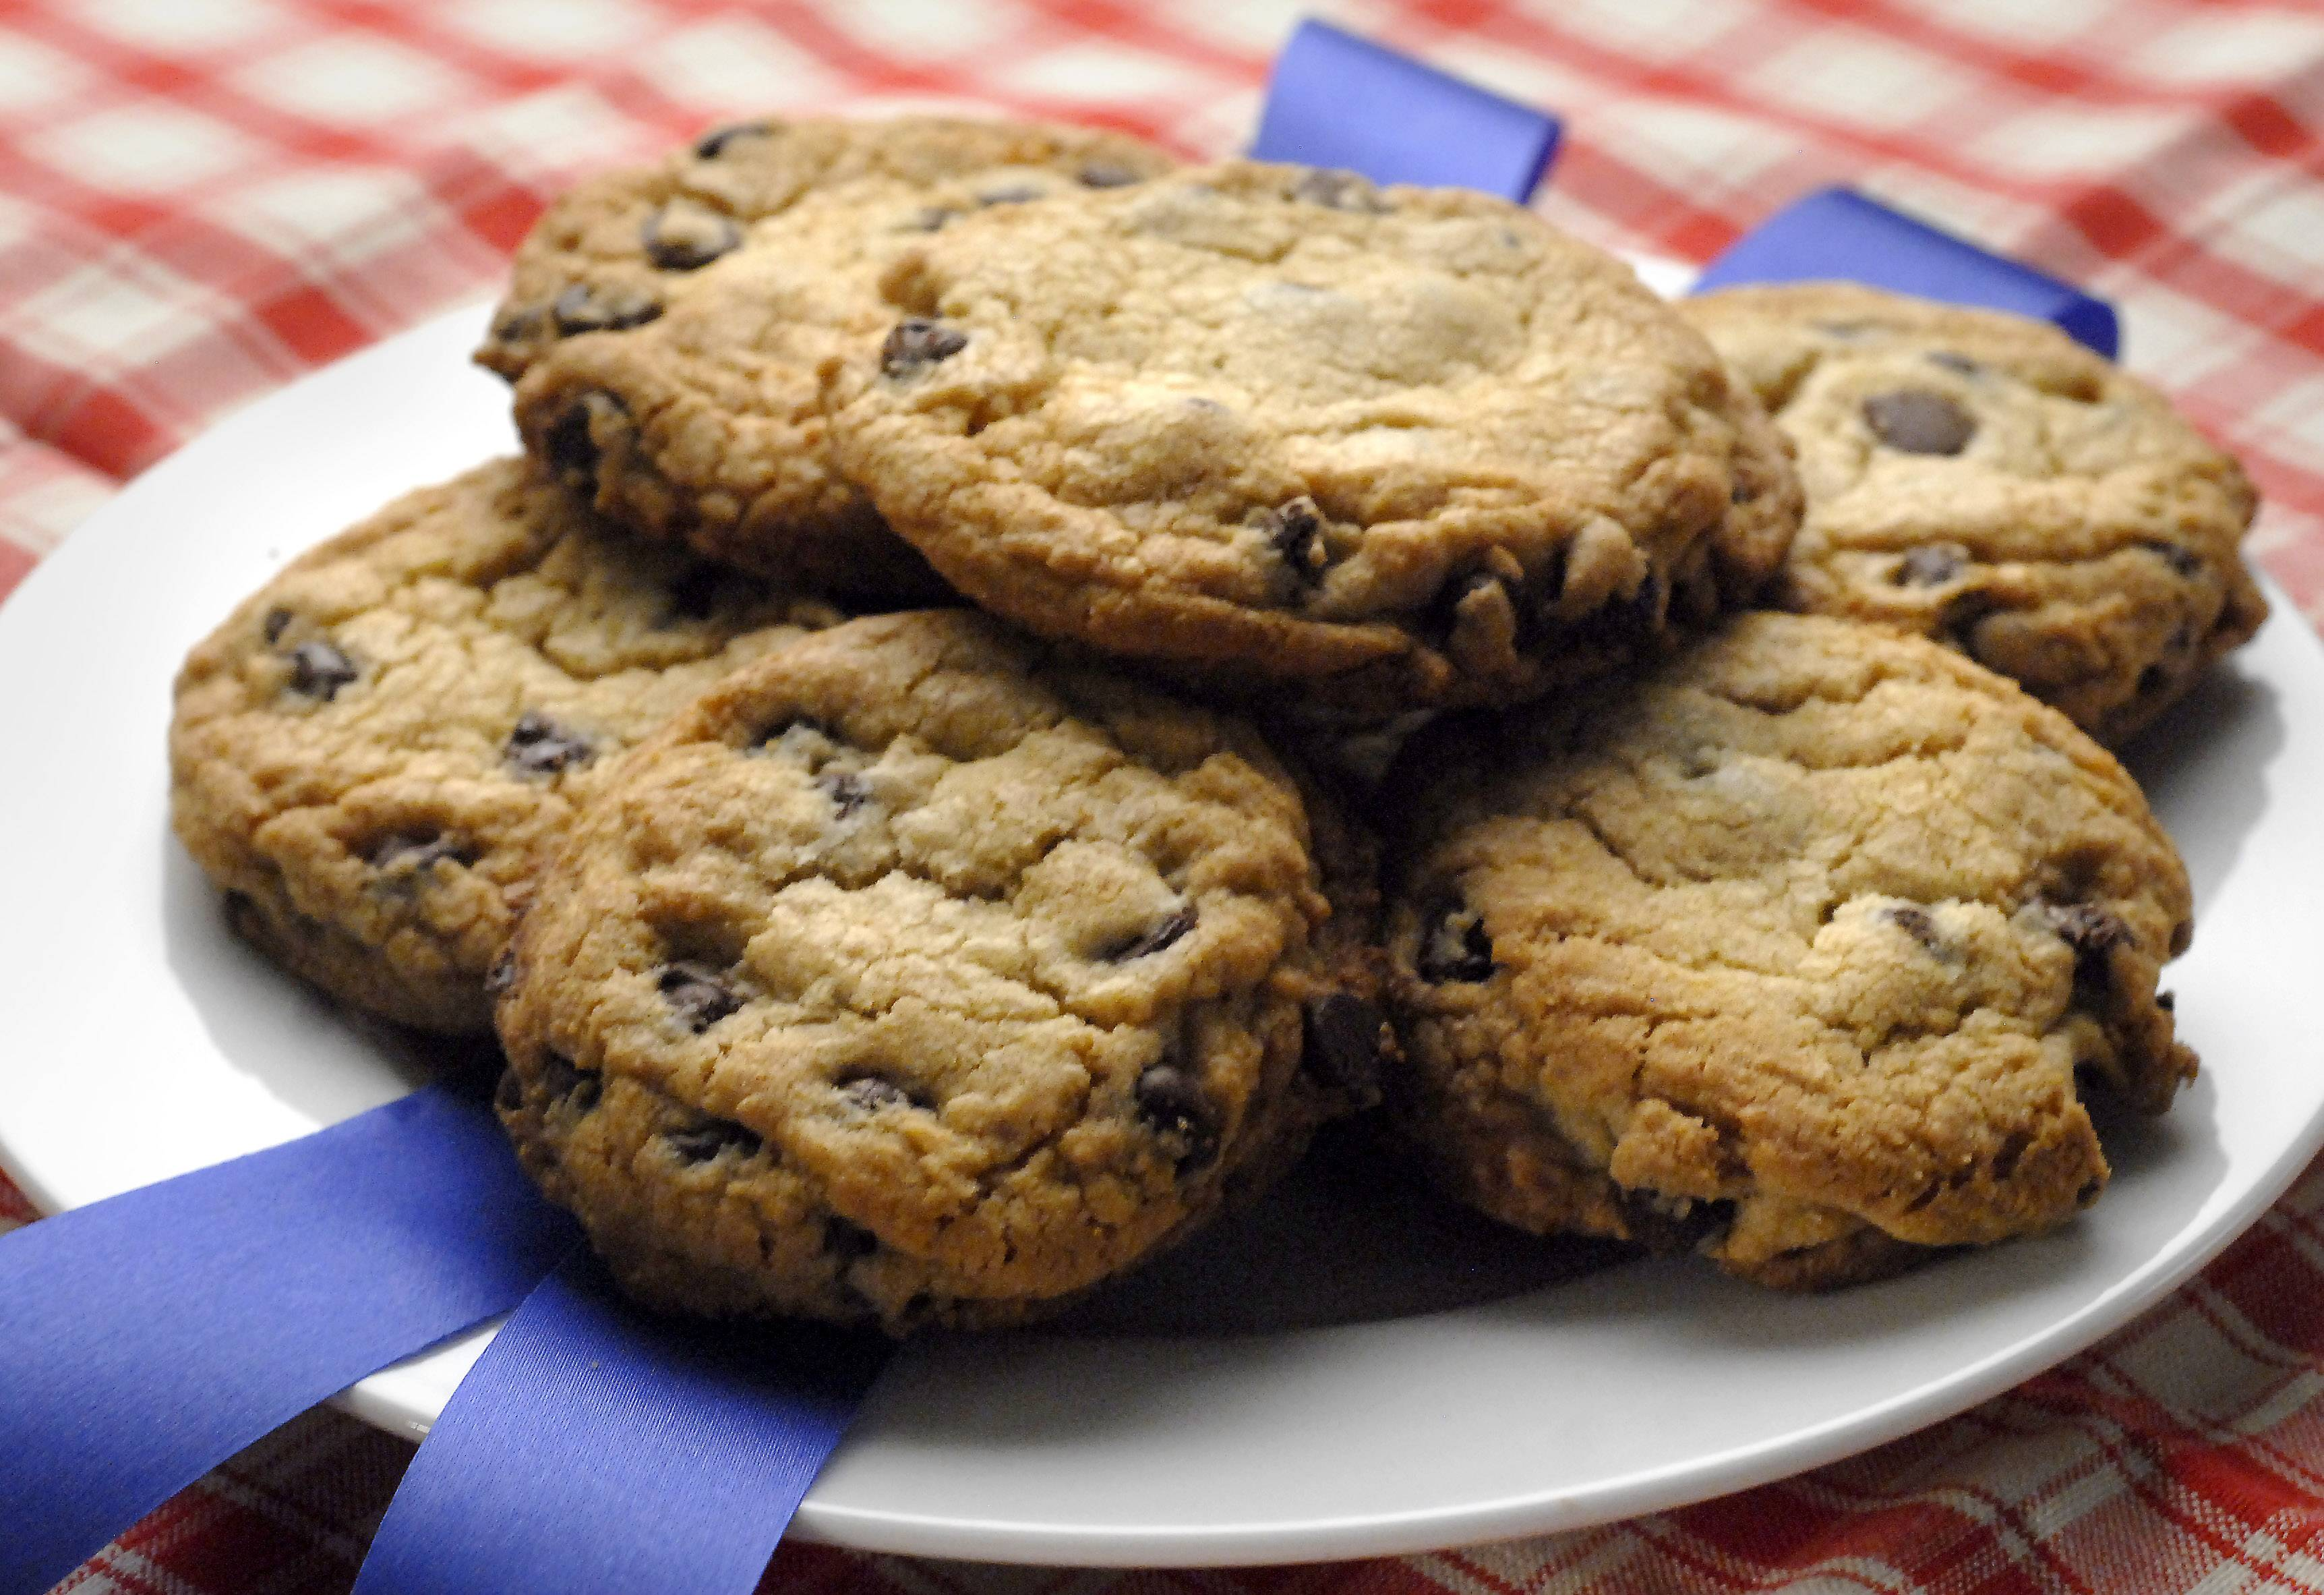 Baking secrets: Don't overcomplicate competition cookies